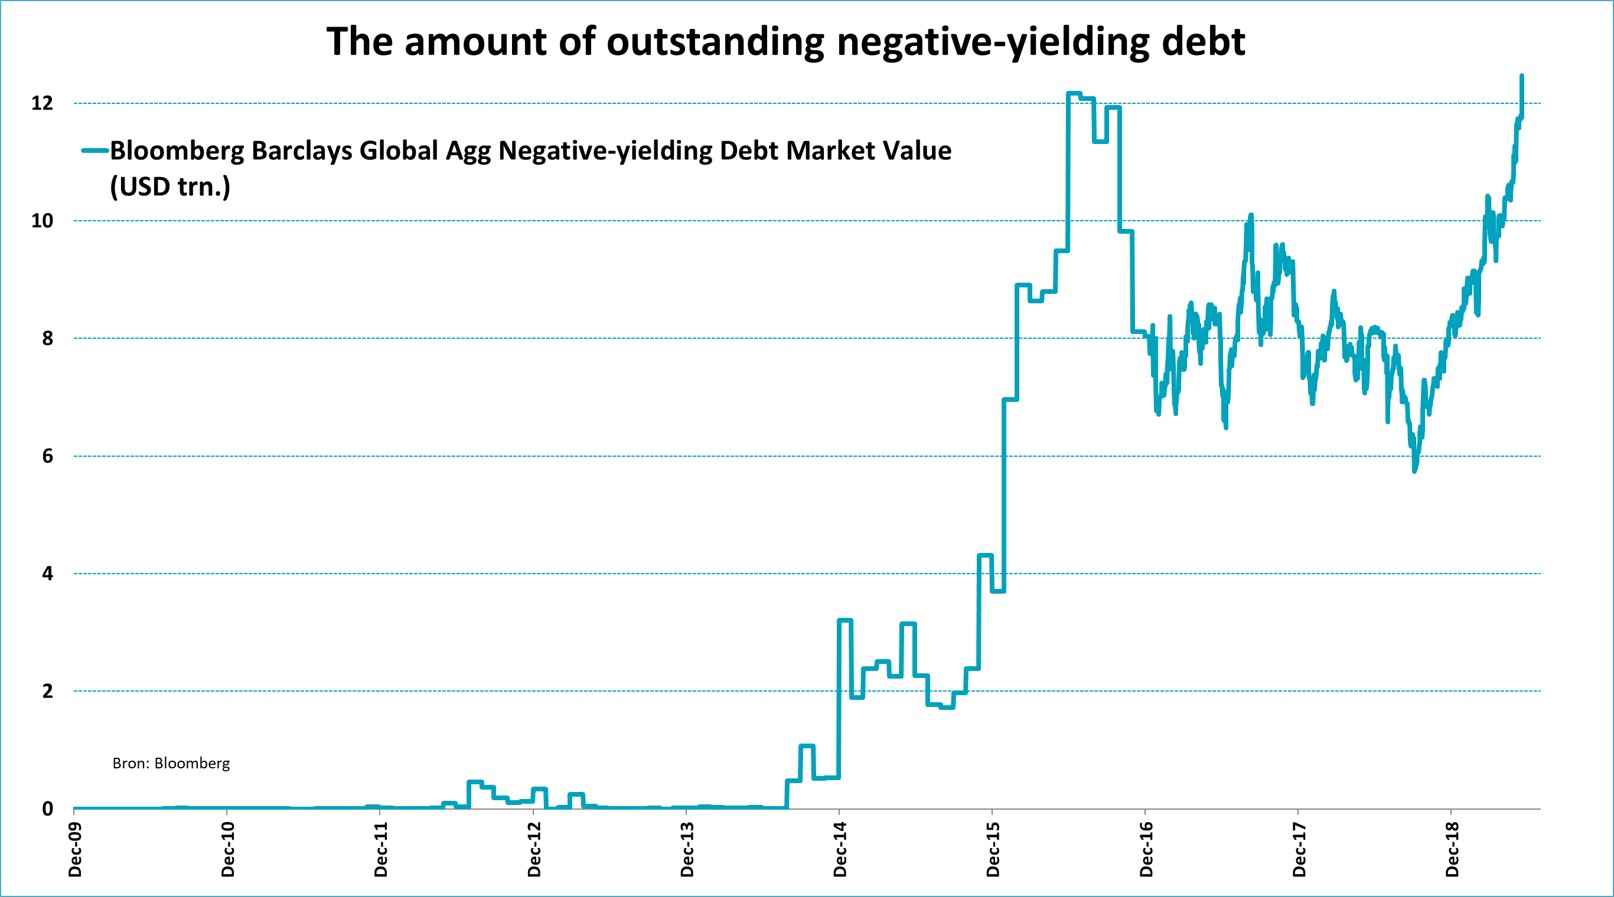 The Amount Of Outstanding Negative-Yielding Debt